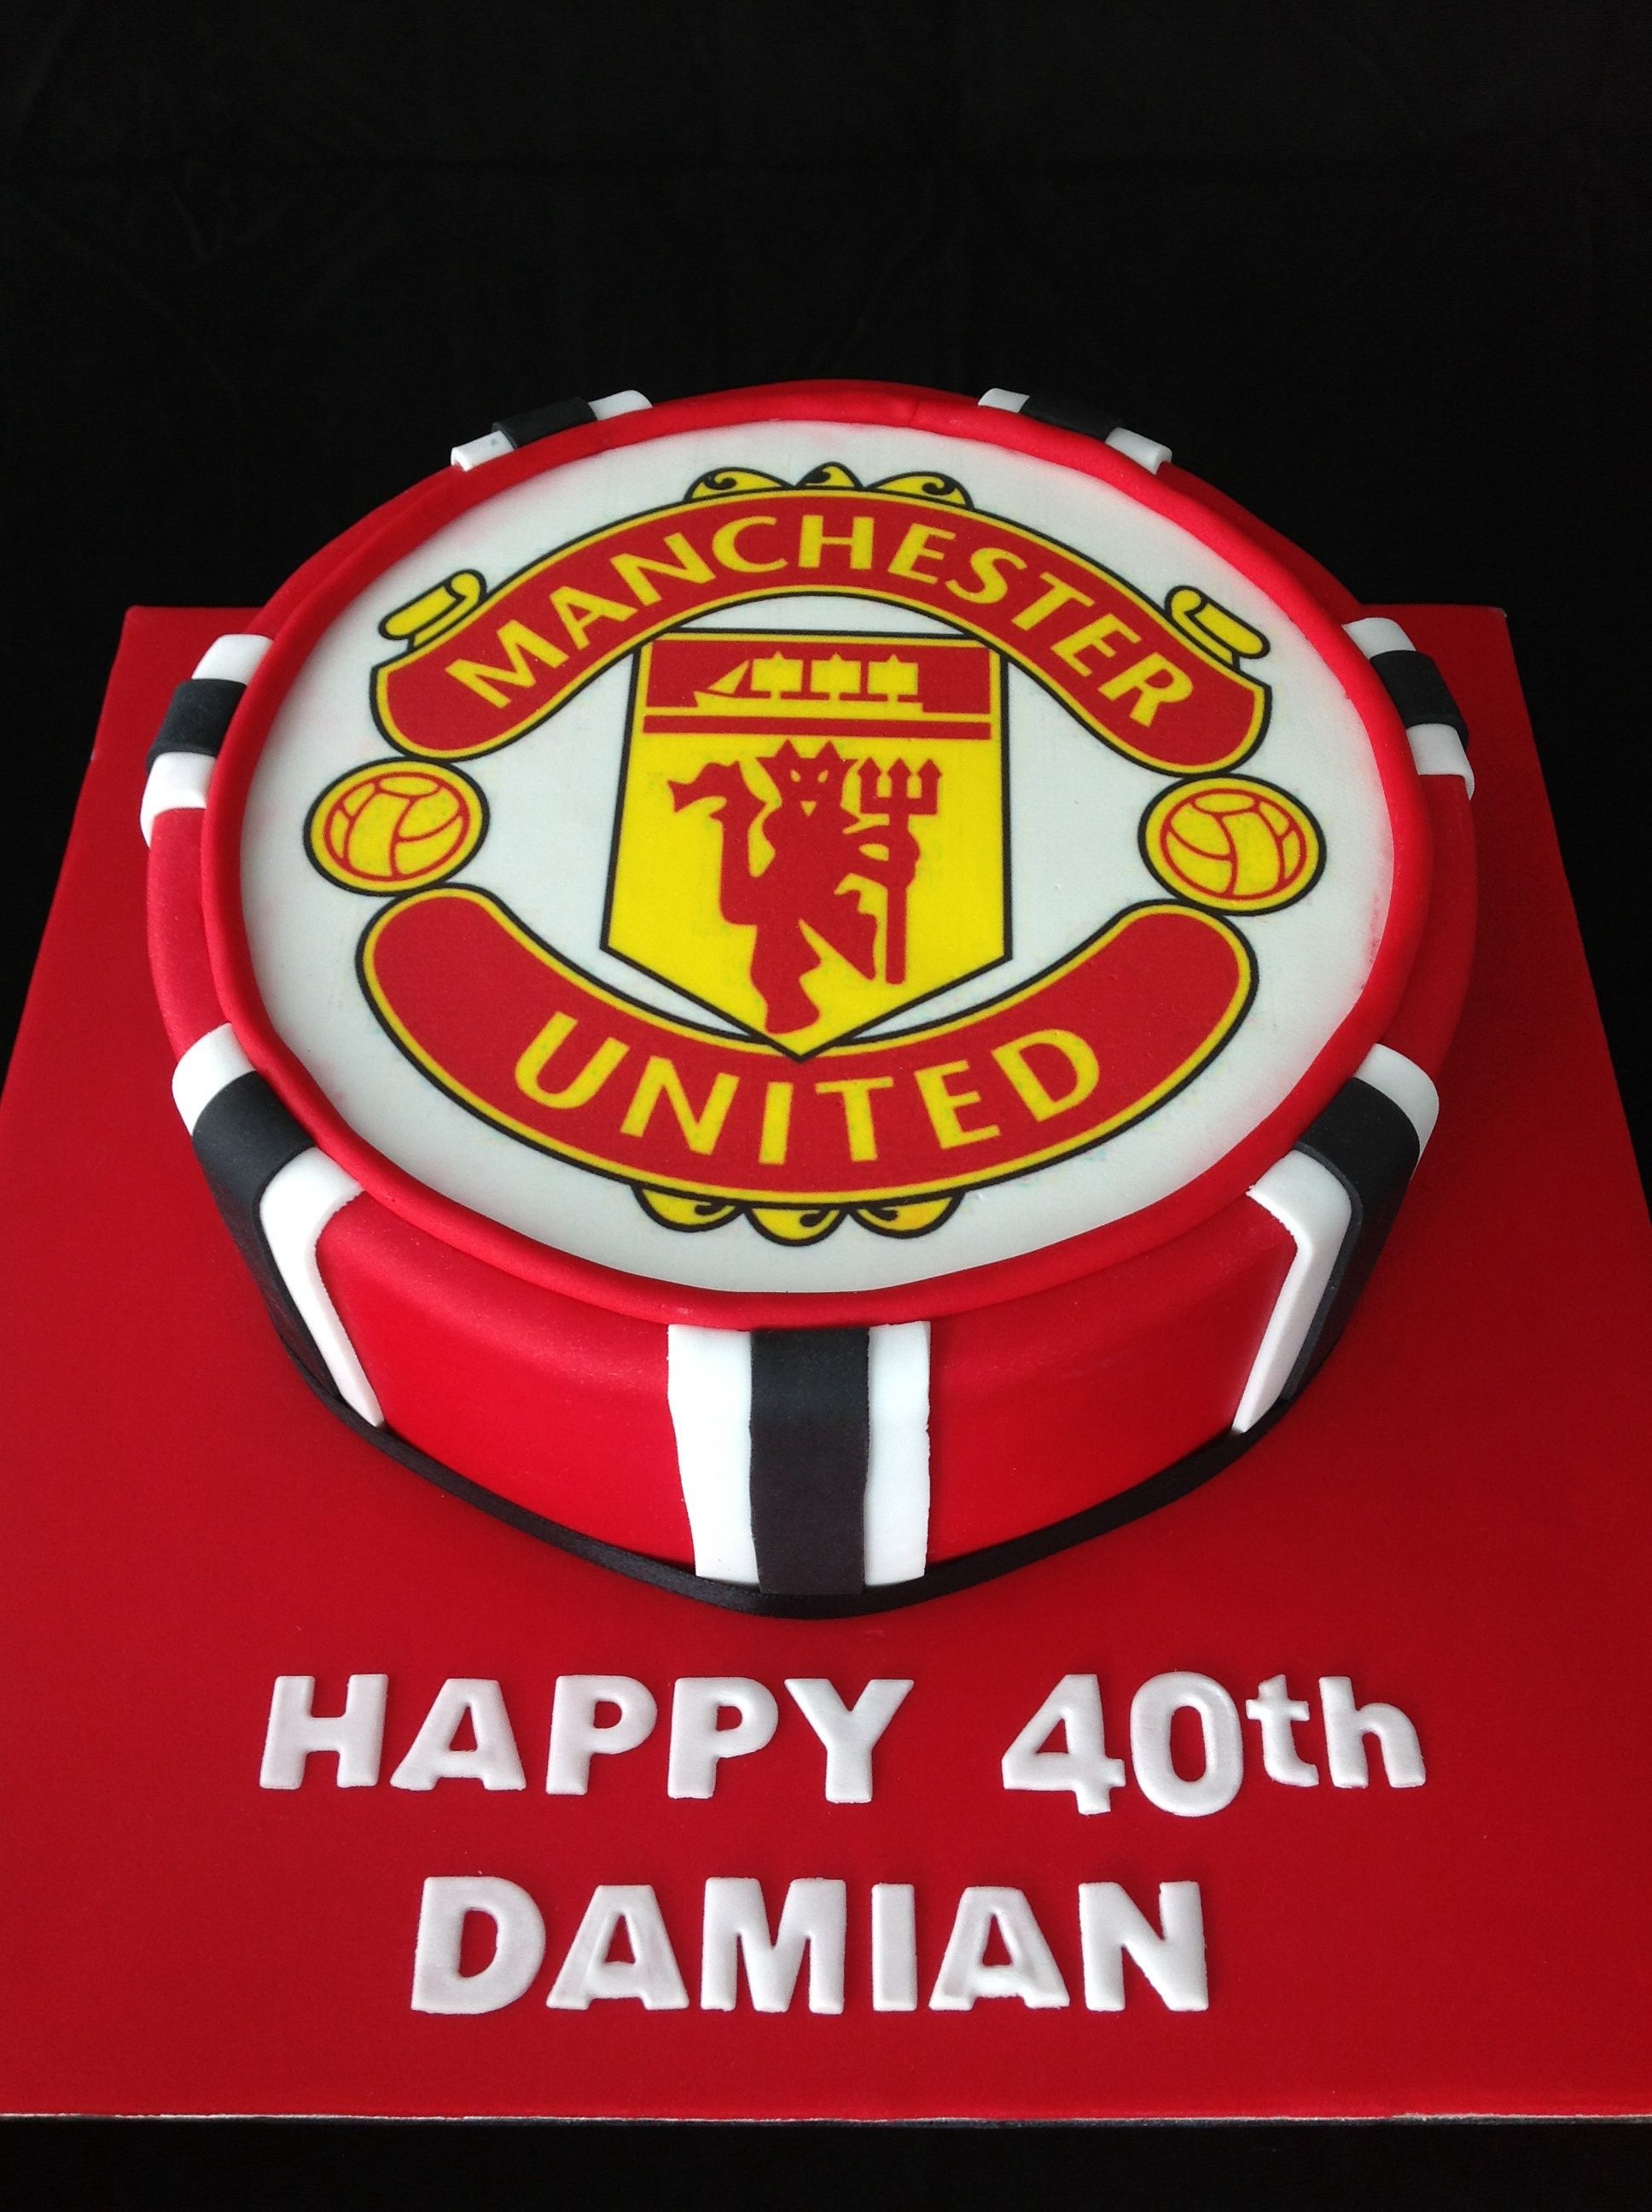 pin by krisandra maynard on my style birthday cakes for men manchester united cake new birthday cake birthday cakes